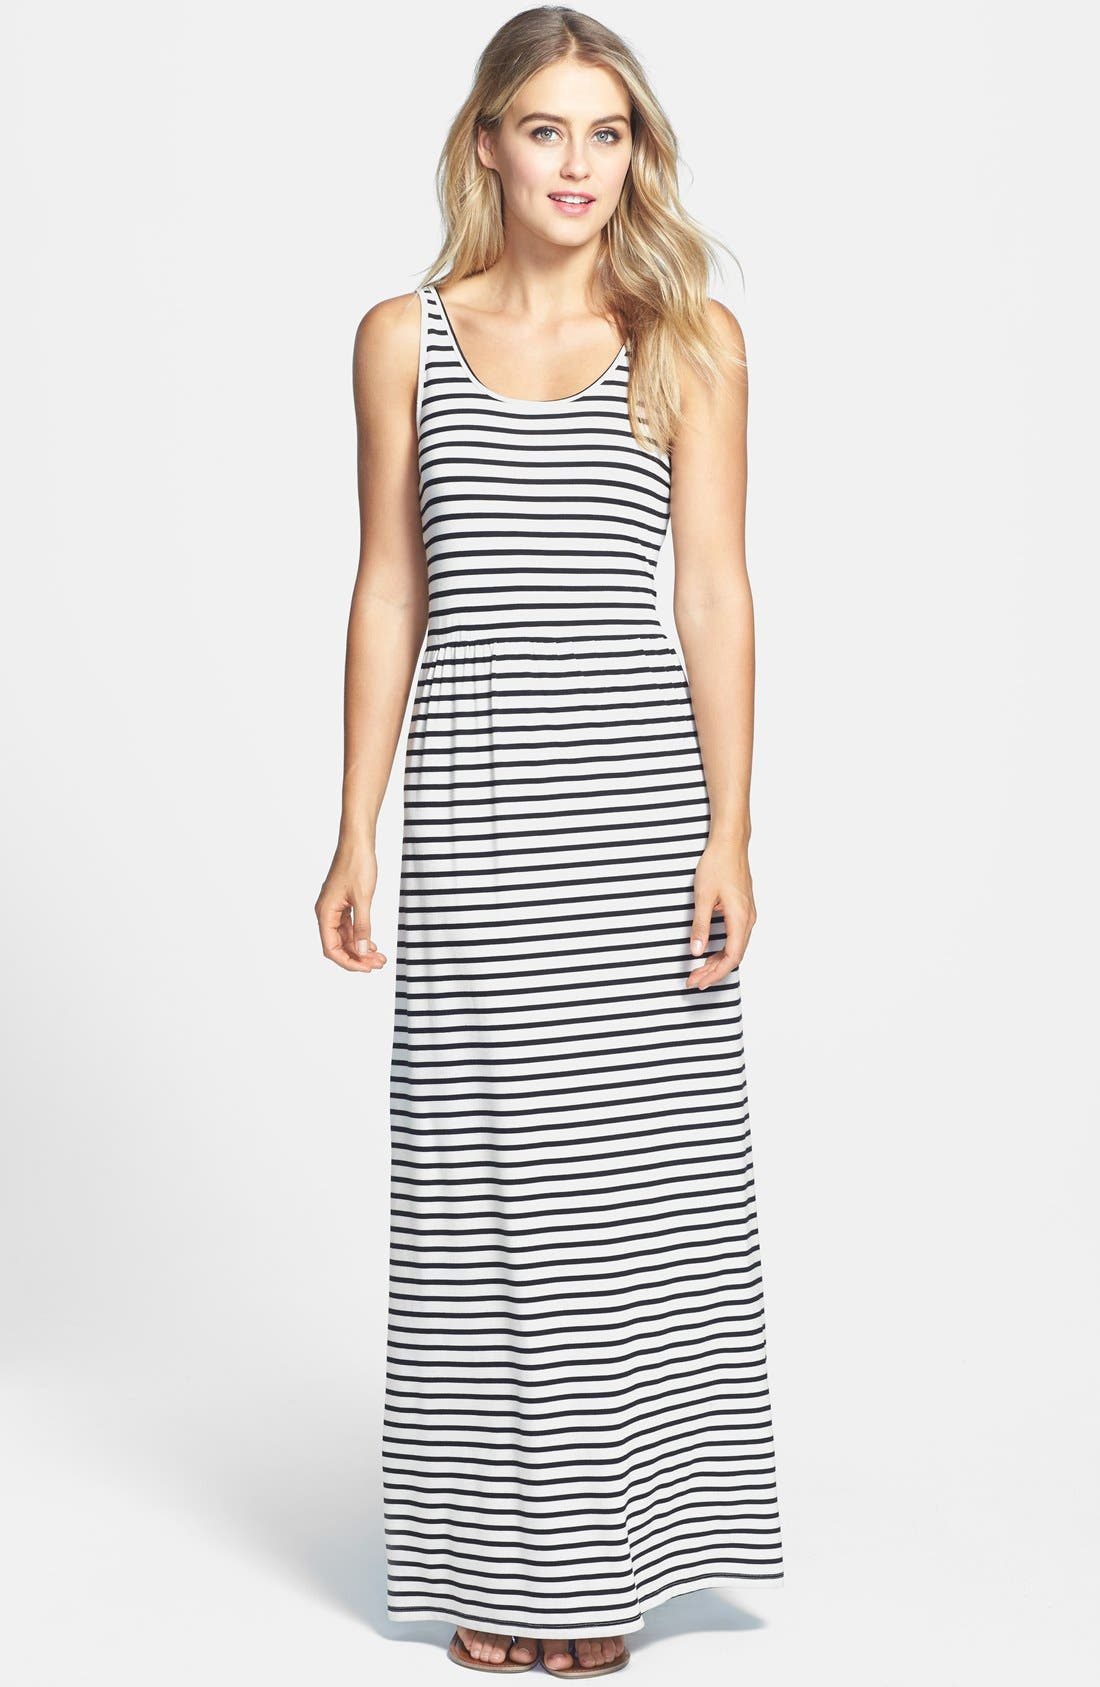 Main Image - Two by Vince Camuto 'Rising Stripe' Back Cutout Sleeveless Maxi Dress